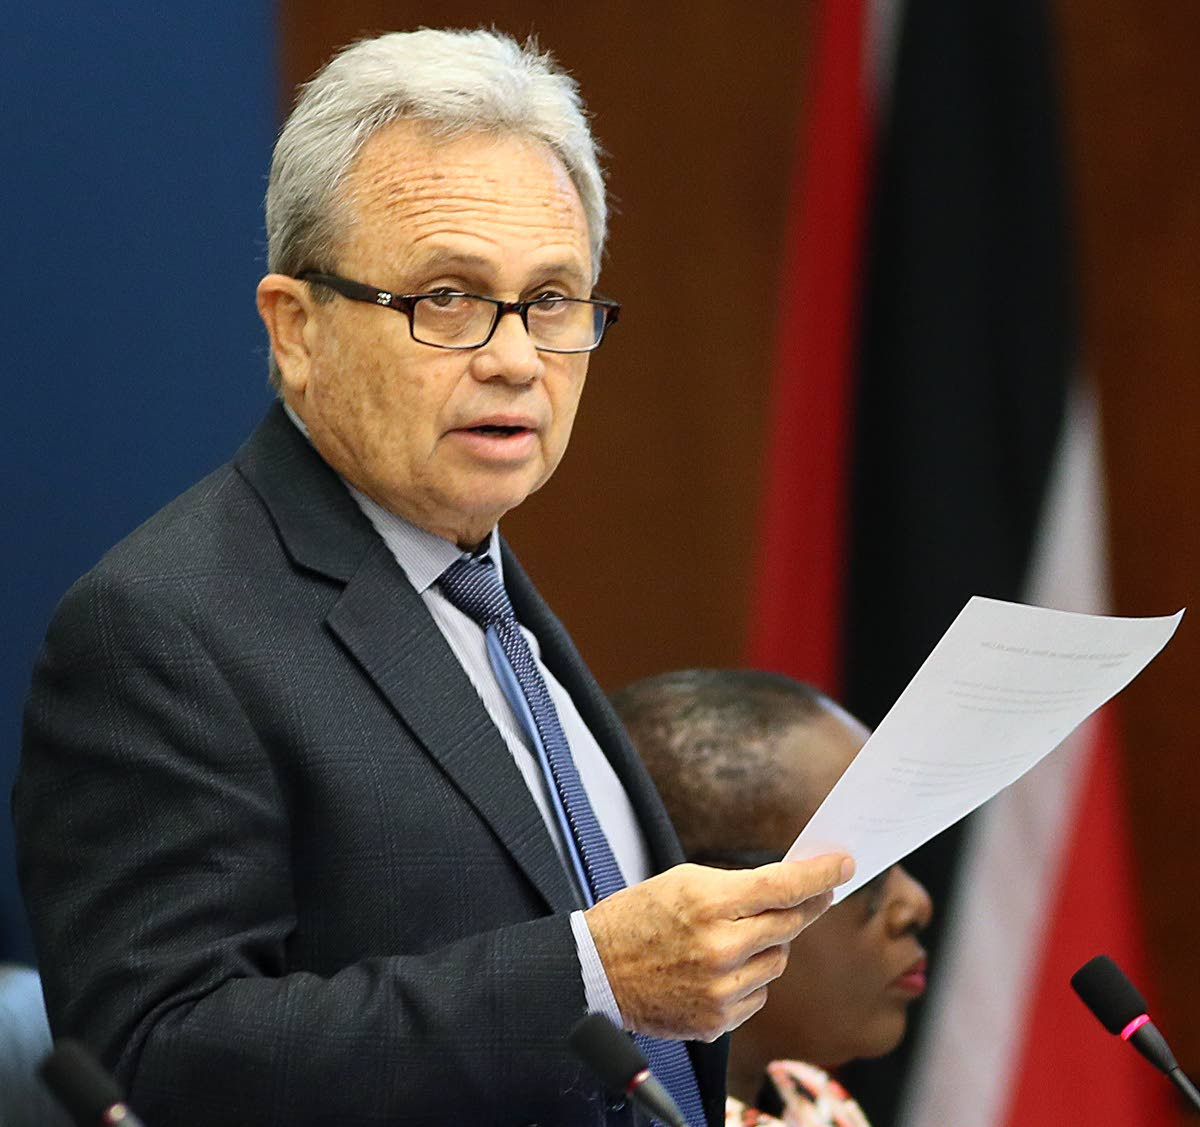 Finance Minister Colm Imbert will present the 2018/2019 budget today.